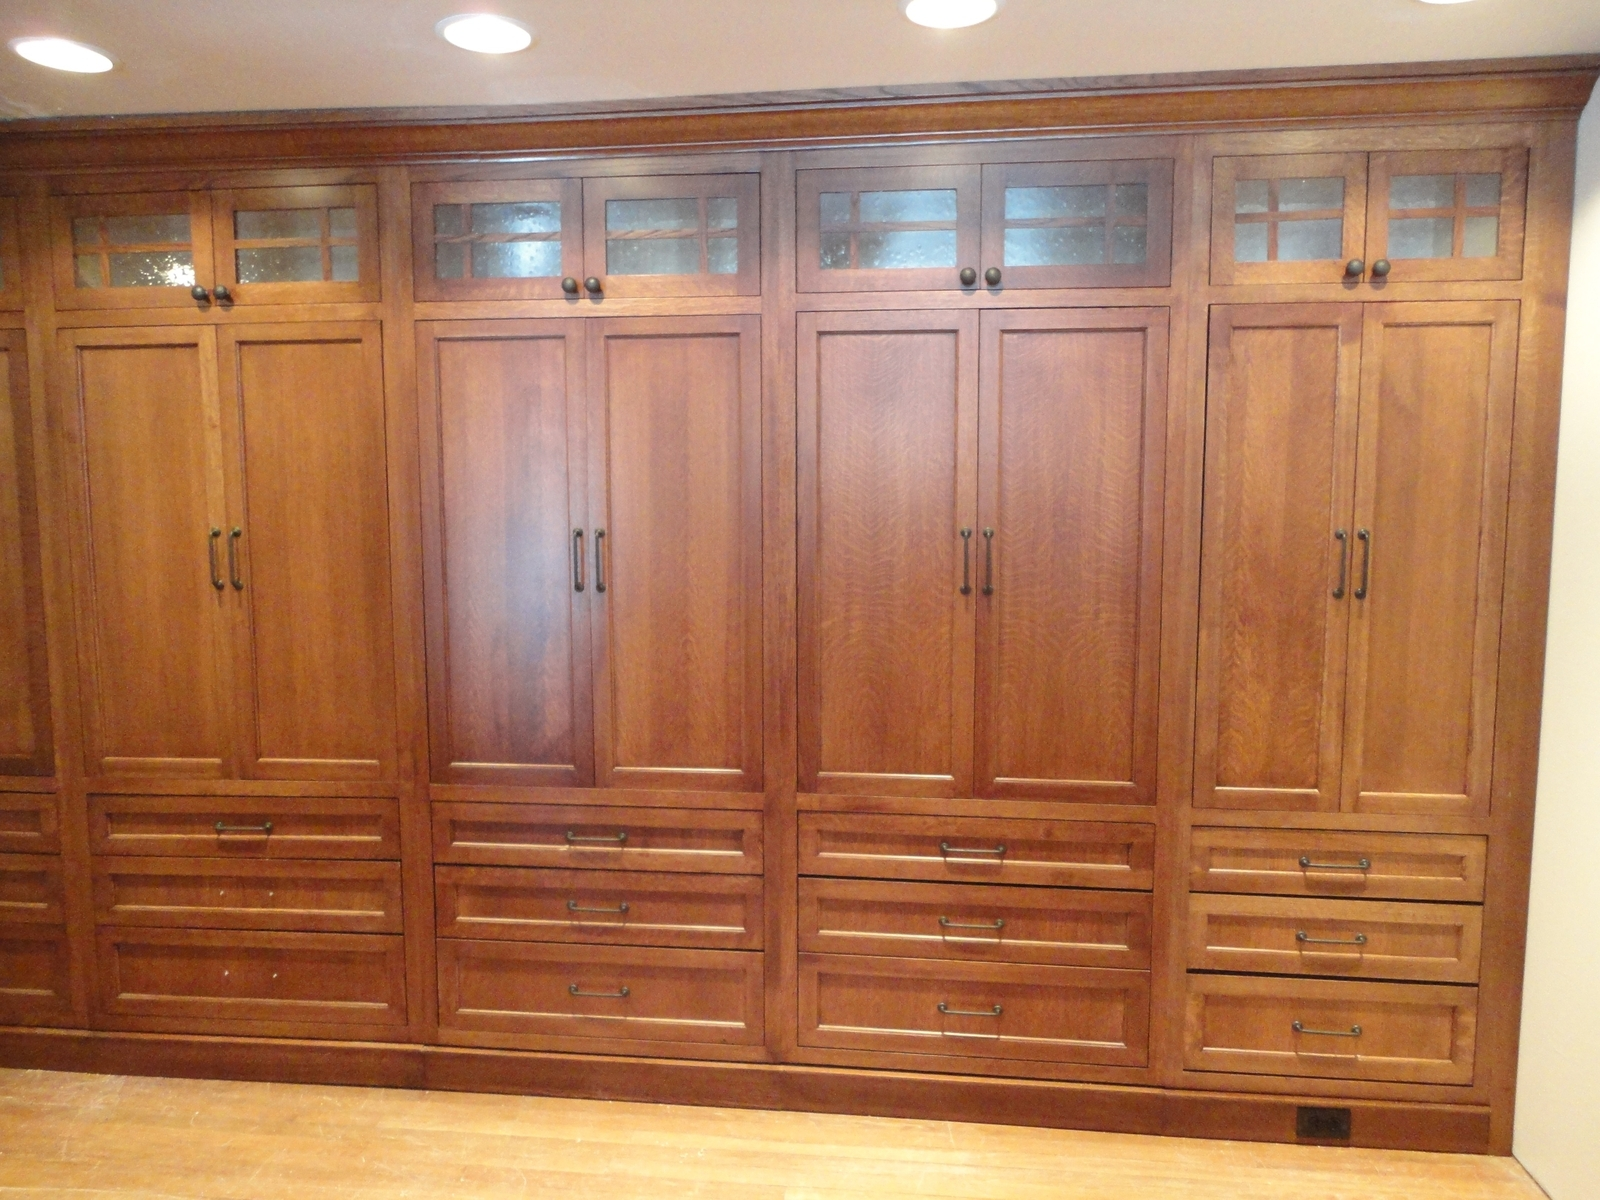 Wardrobe Closet Cabinet With Regard To Solid Wood Built In Wardrobes (Image 15 of 15)